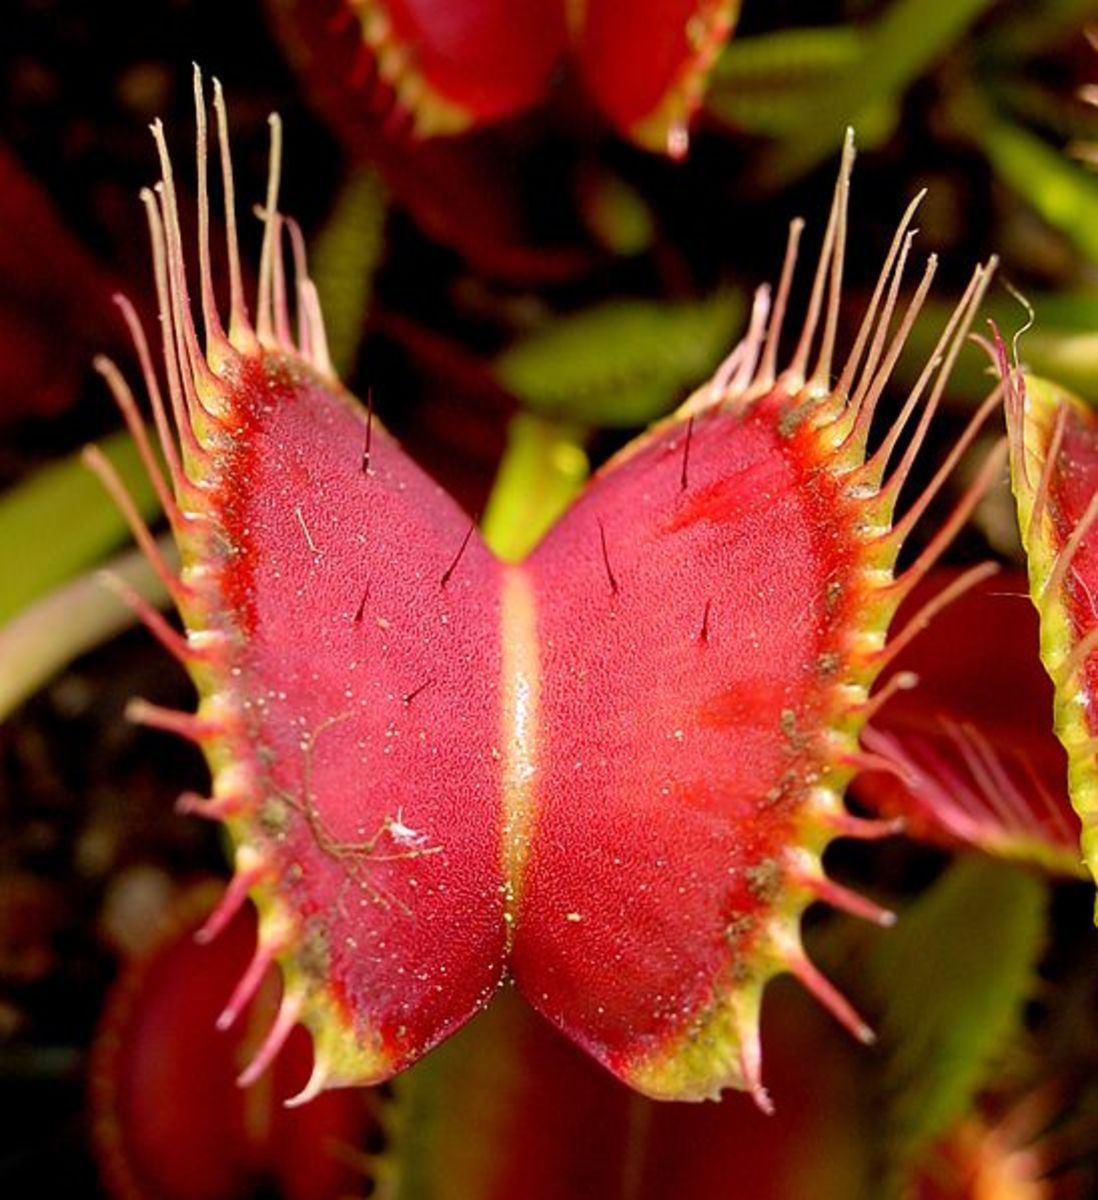 The Venus Fly Trap is a carnivorous plant that eats insects. The plant is native to North Carolina.